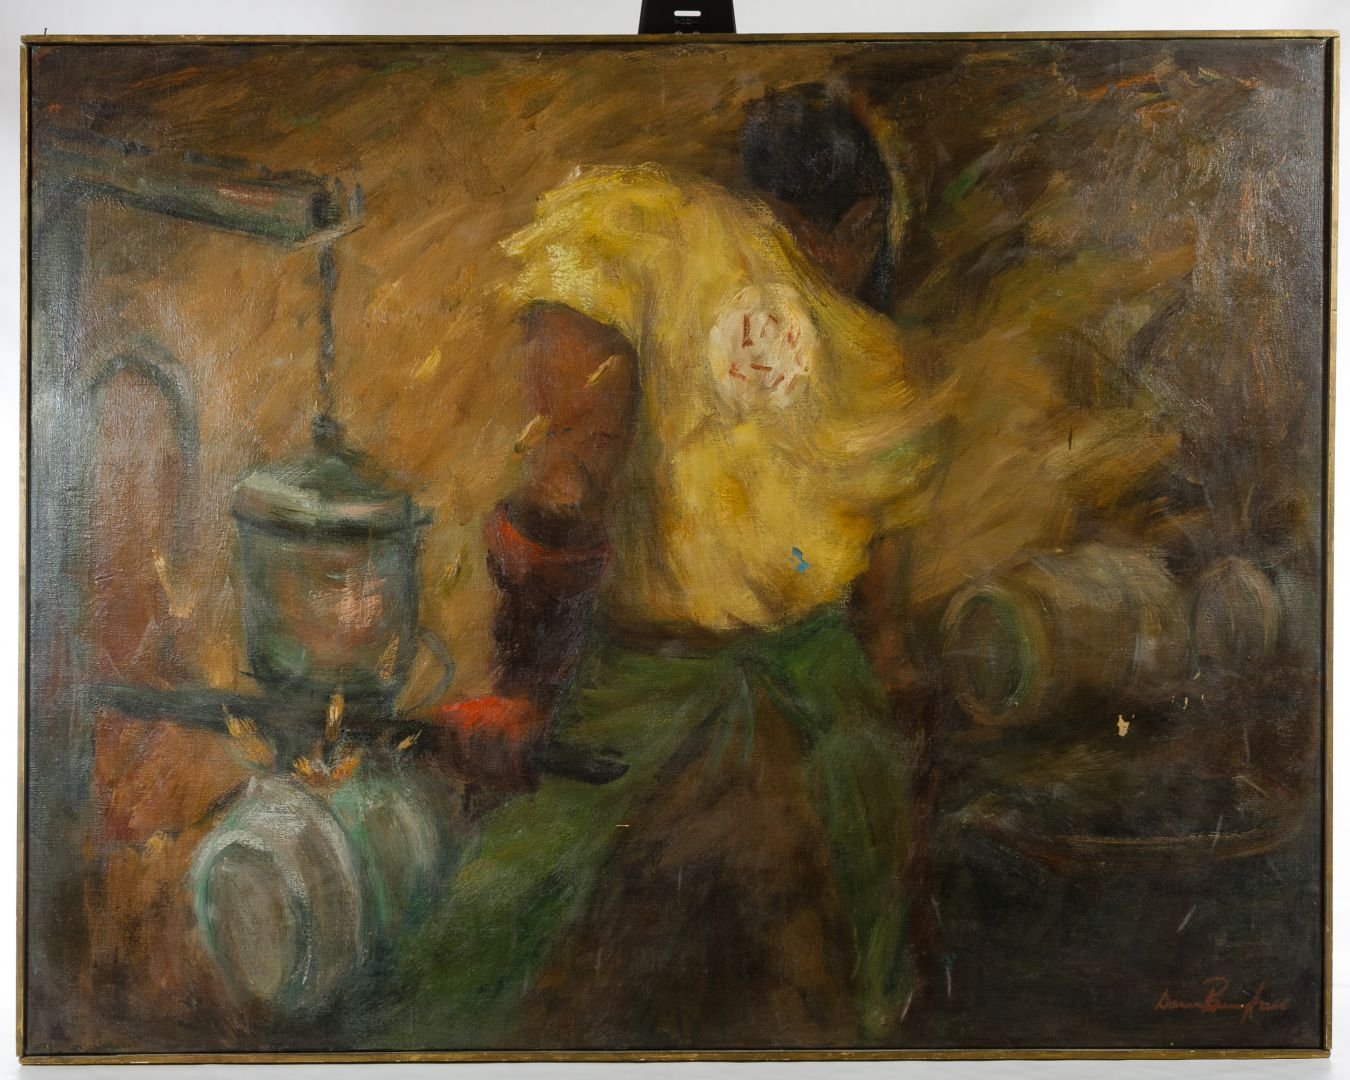 """Lot 340: Donna Berryhill (American, 1931-1997) Oil on Canvas; Undated, signed lower right, depicting a black male iron worker wearing a yellow shirt inside a iron shop; canvas stretcher is marked """"Meny's Art Shop 5509 San Pedro San Antonio, TEX"""" and """"Reg Bungler"""""""